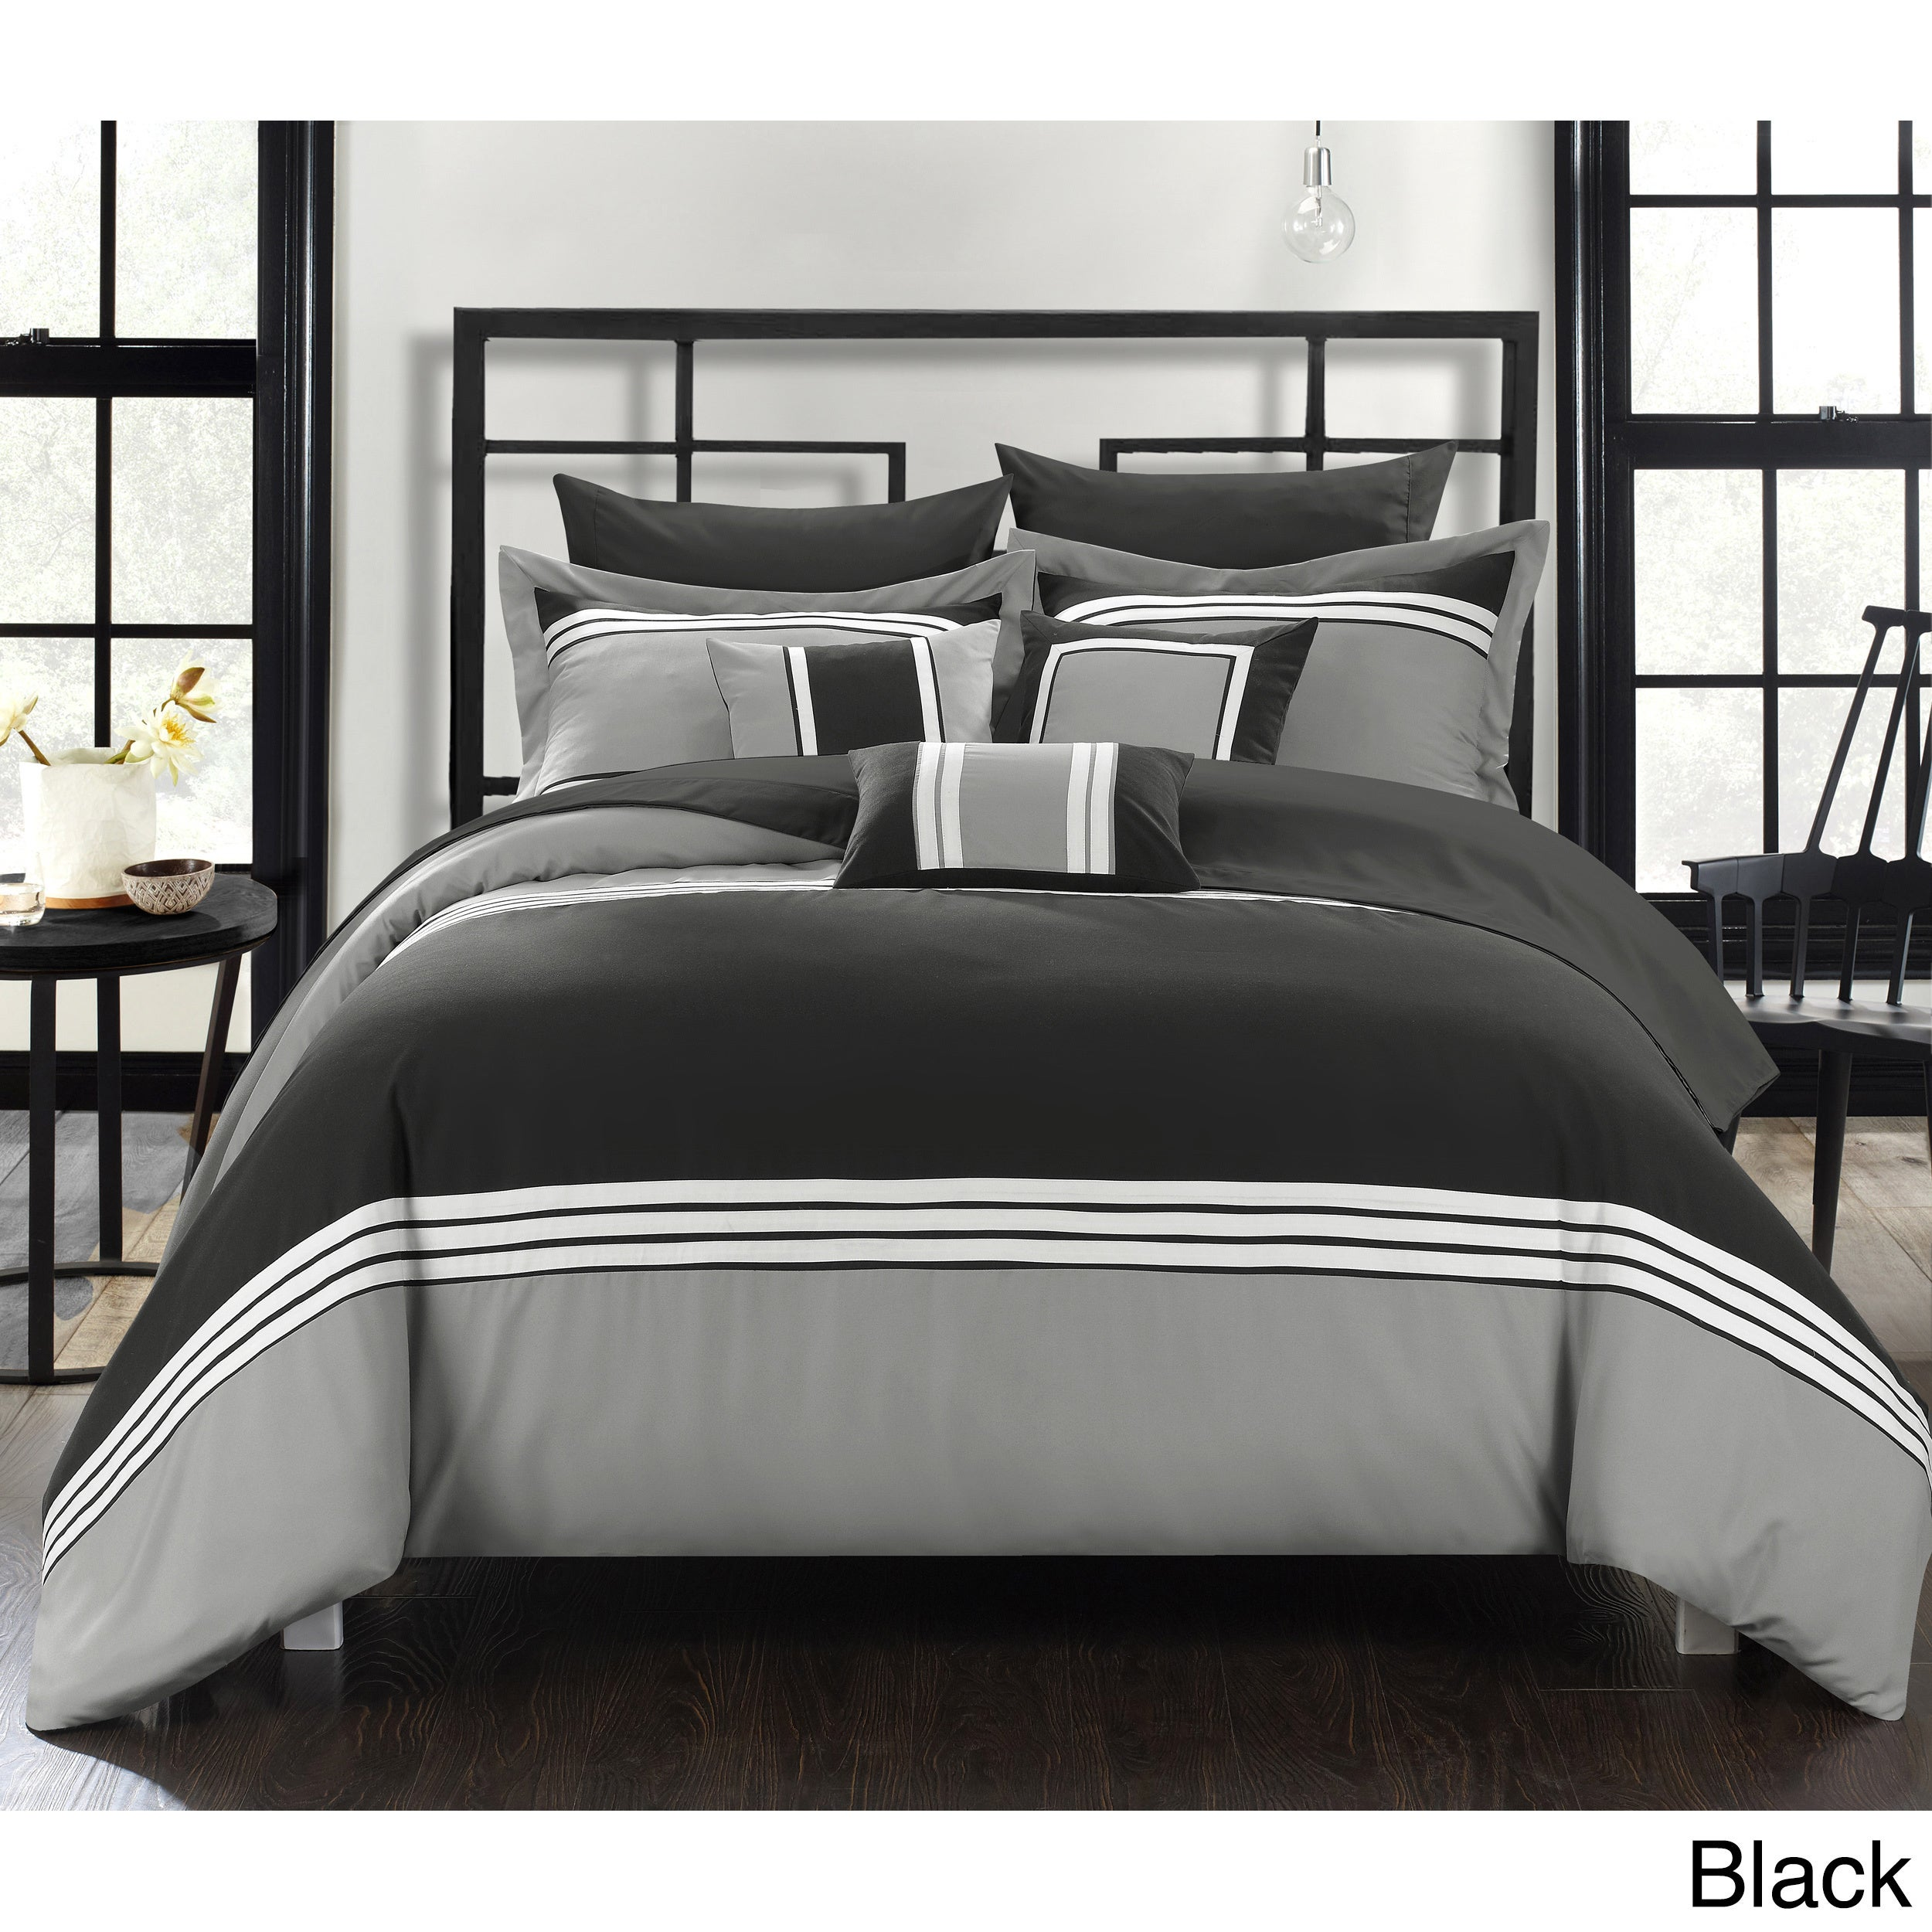 bedding set sets free comforter overstock bath hotel today shipping piece product capprice